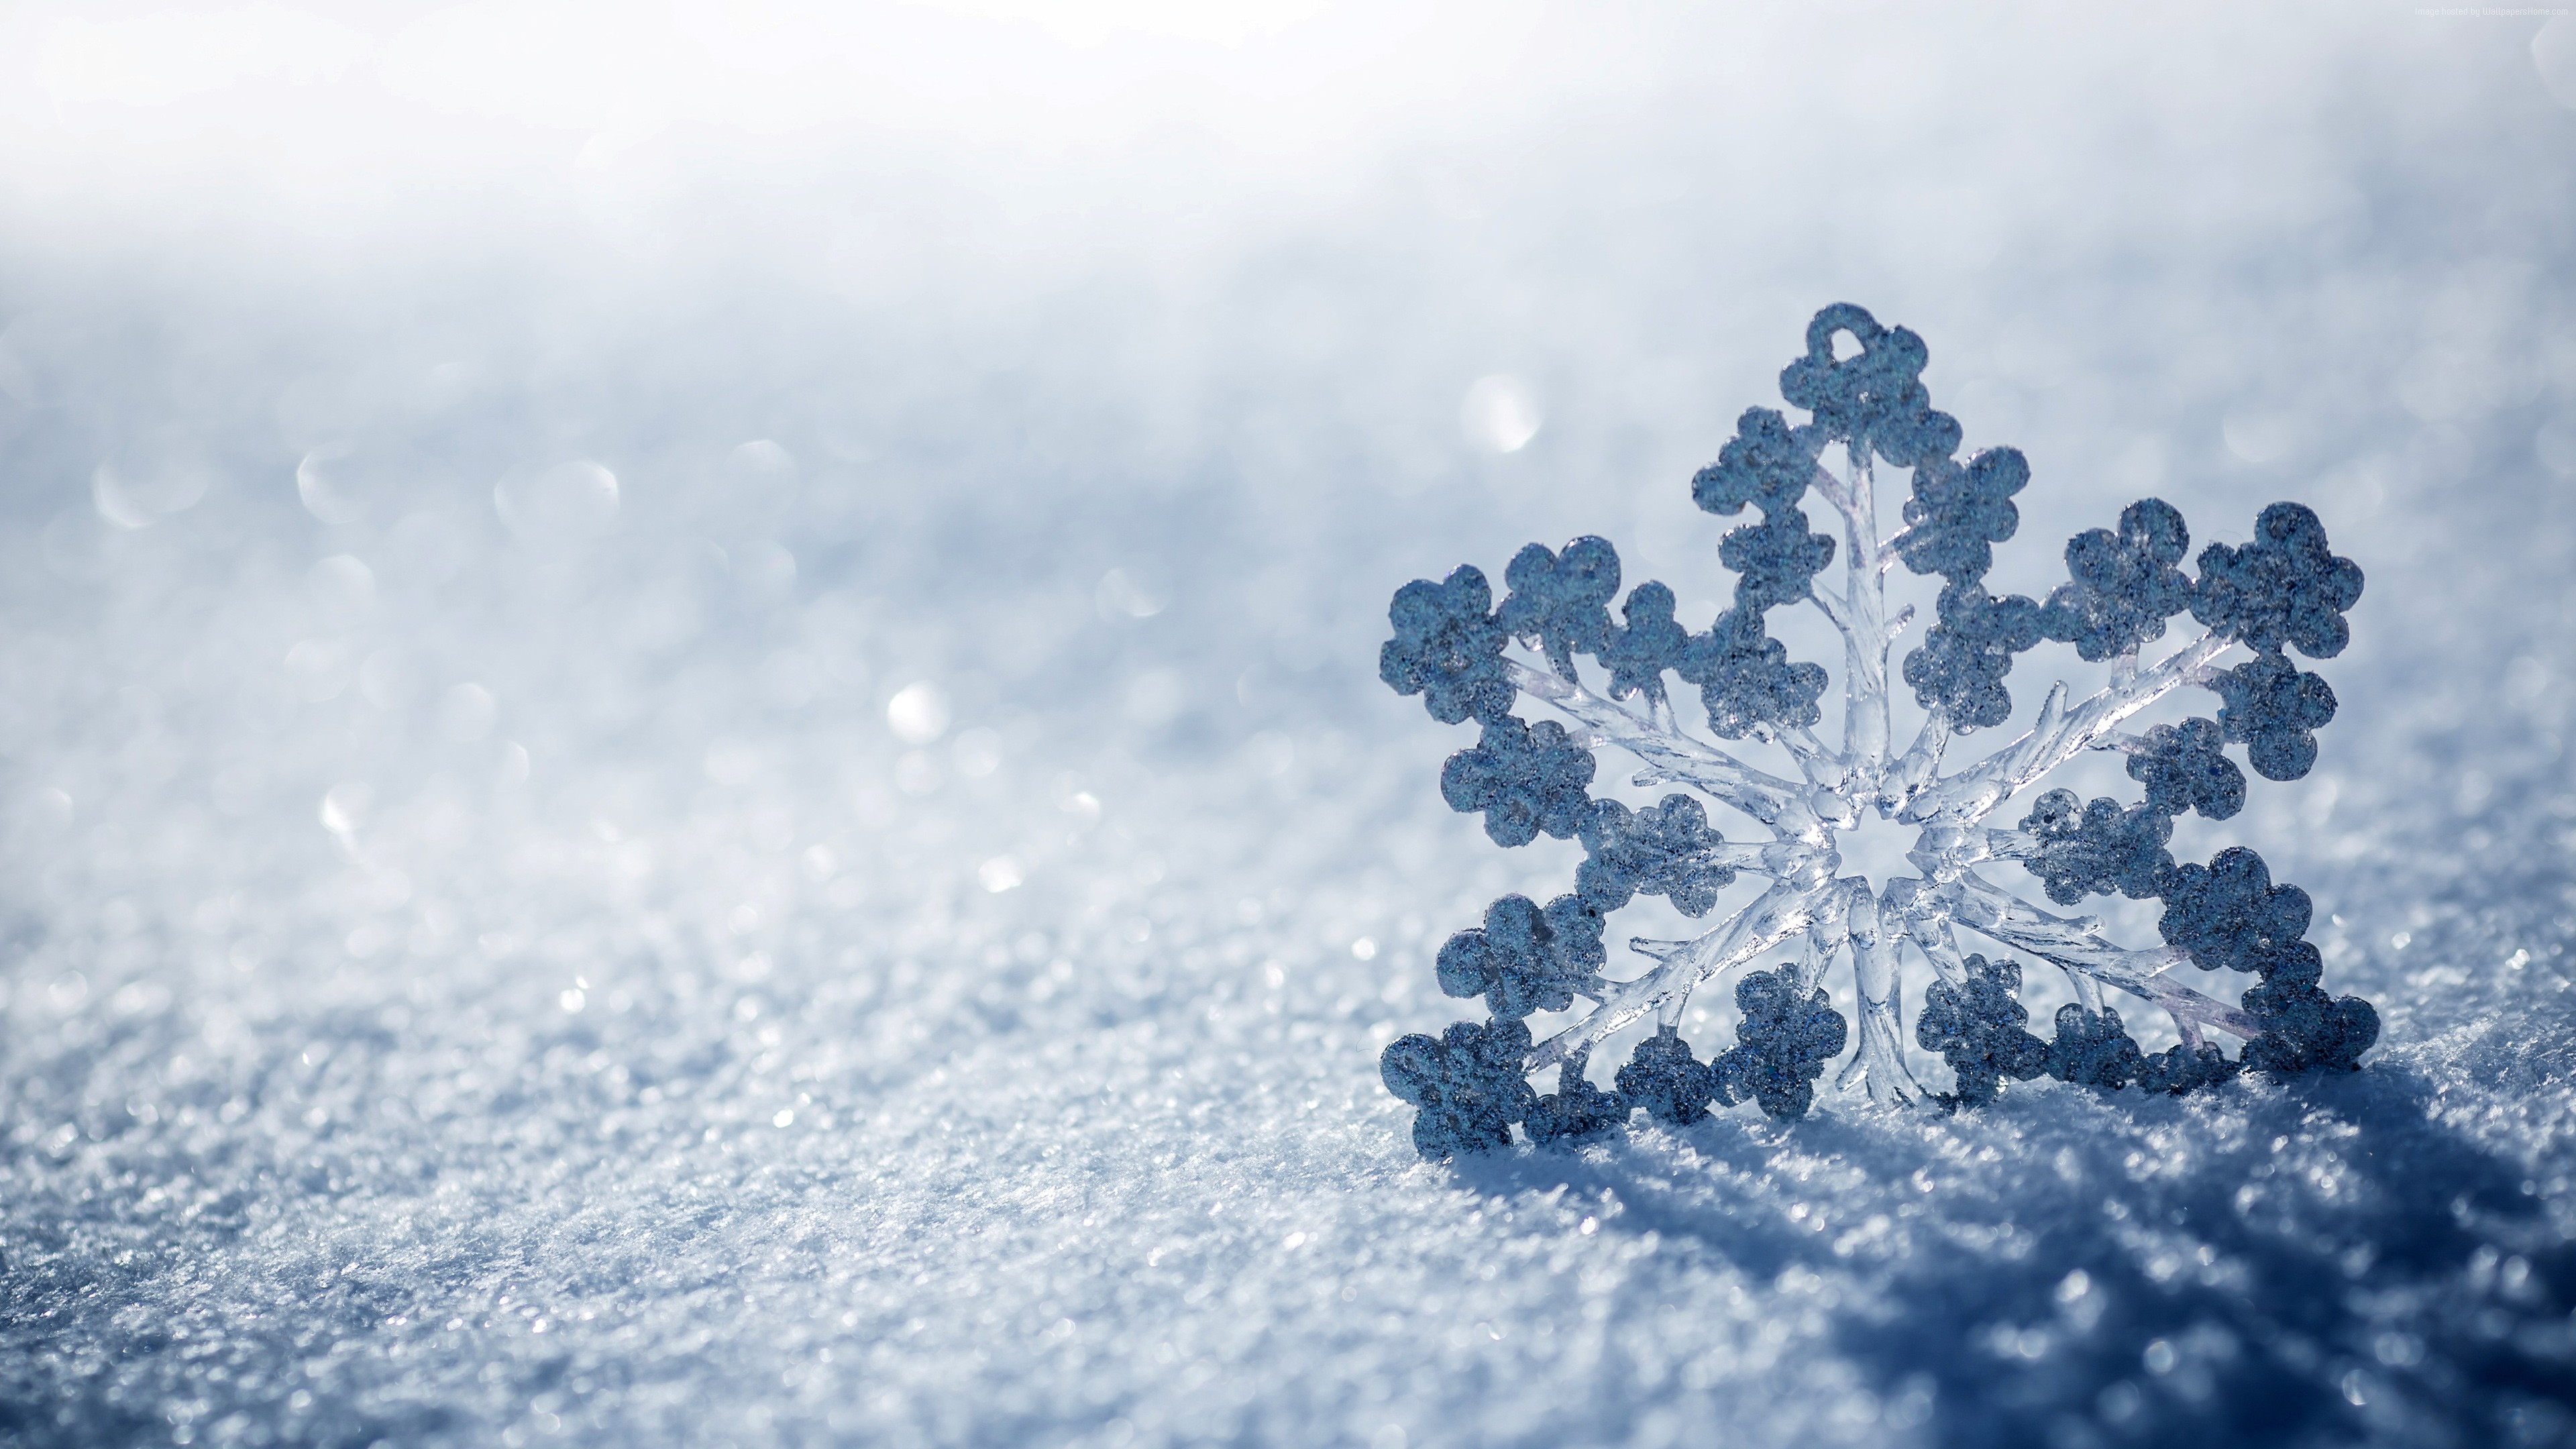 Stock Images snow, winter, snowflake, 4k, Stock Images